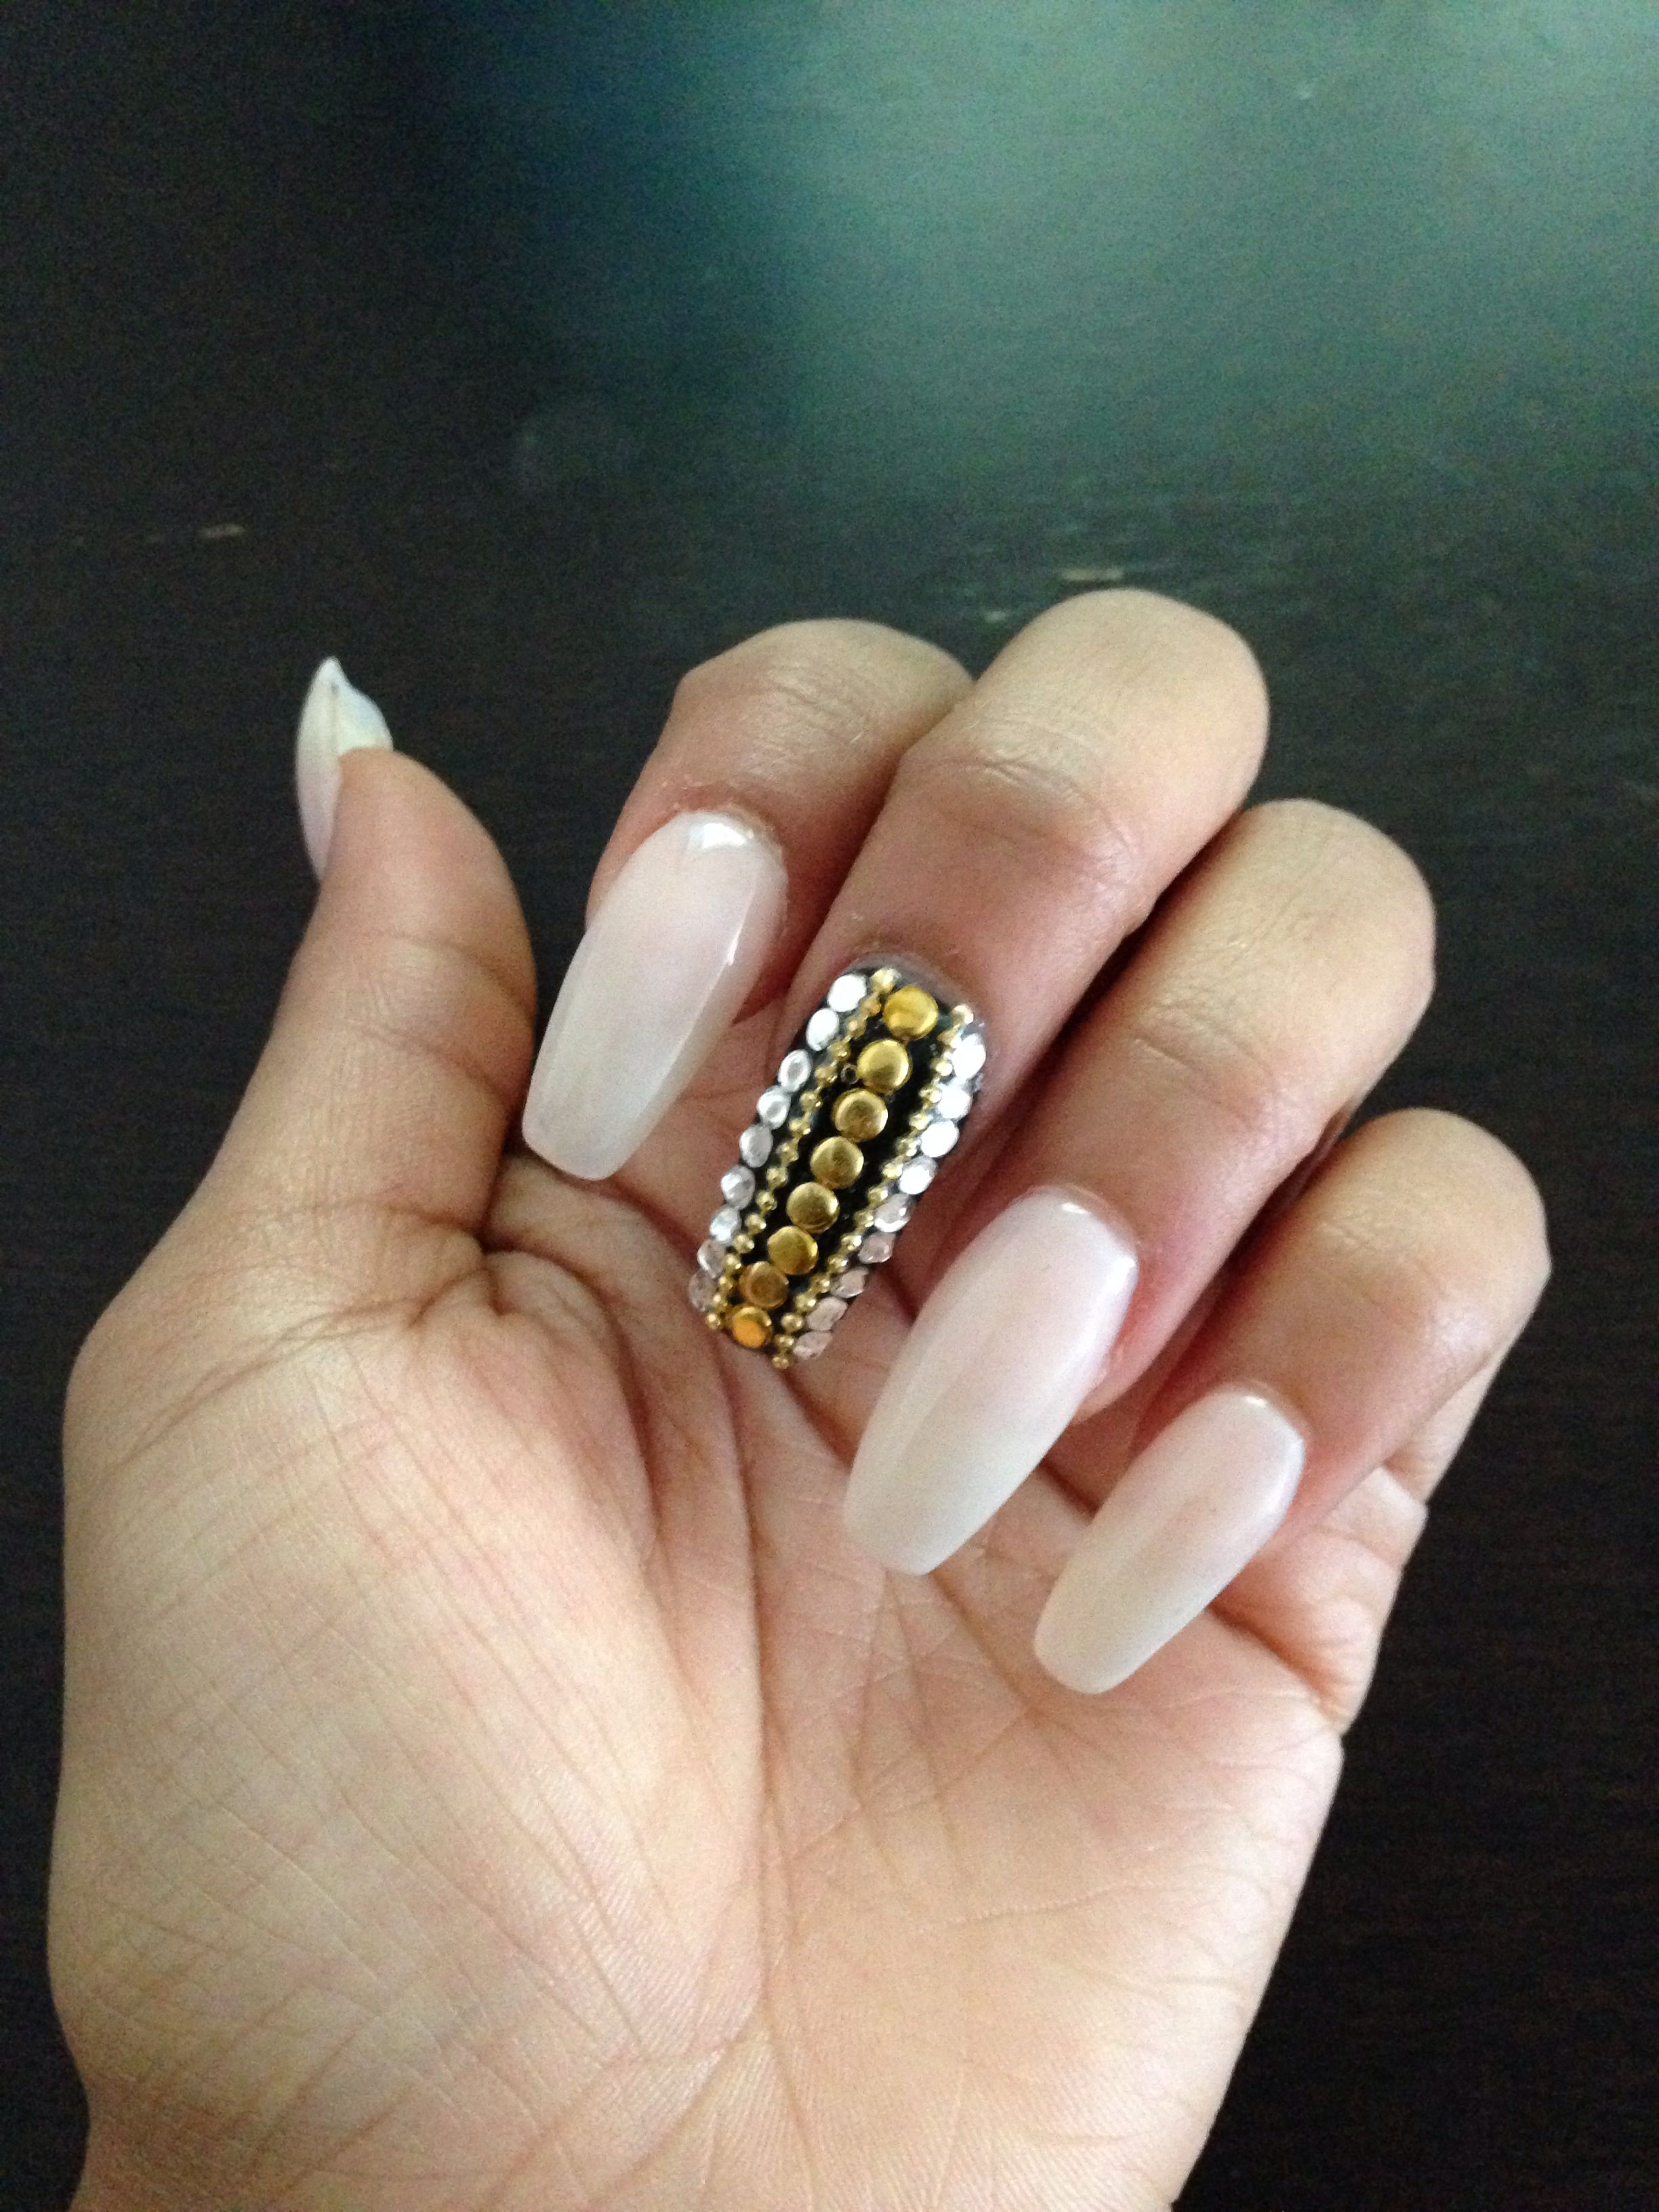 New nails! Coffin shape! Love the bling placement. | {{иαιℓѕ.иαιℓѕ ...